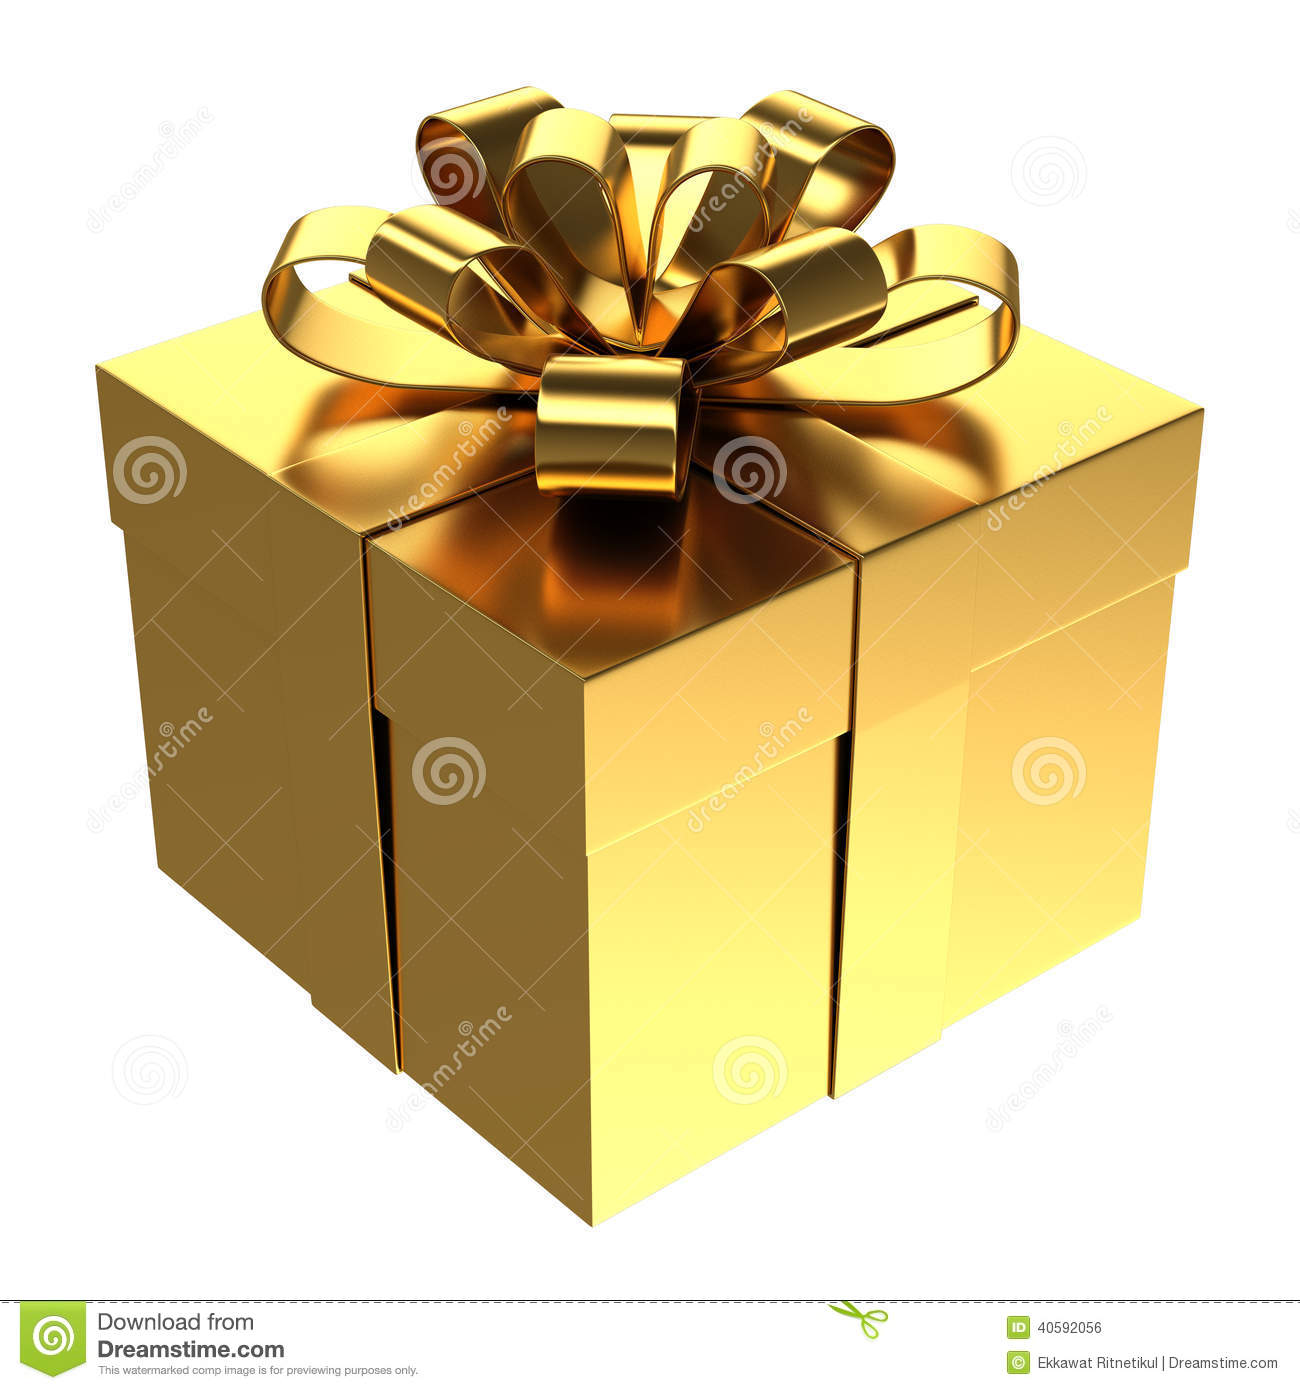 Christmas Gift Box Png.Golden Gift Box Png Transparent Background Stock Photo